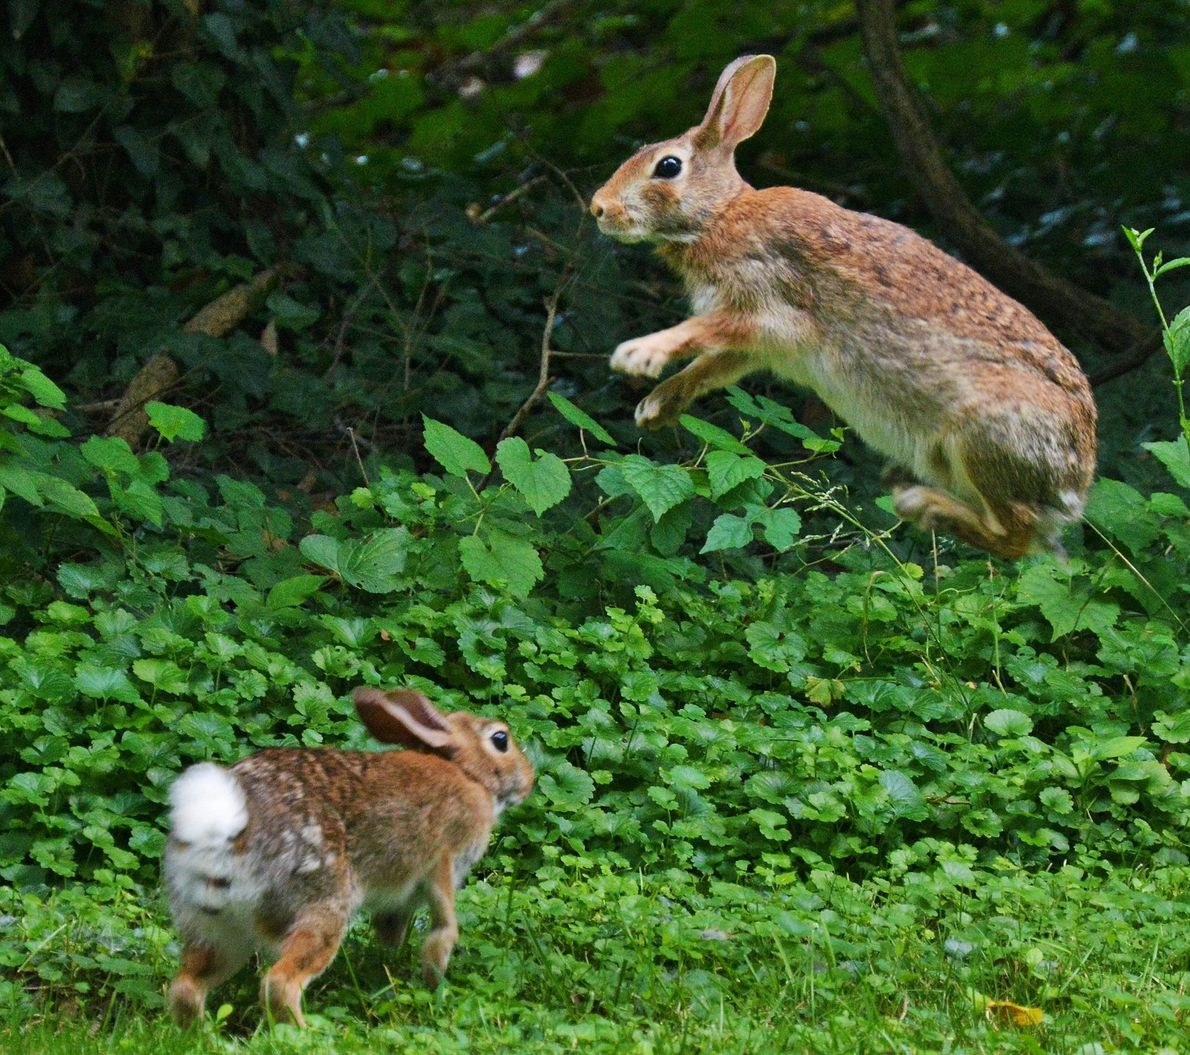 Two young rabbits playfully chase each other in the grass.